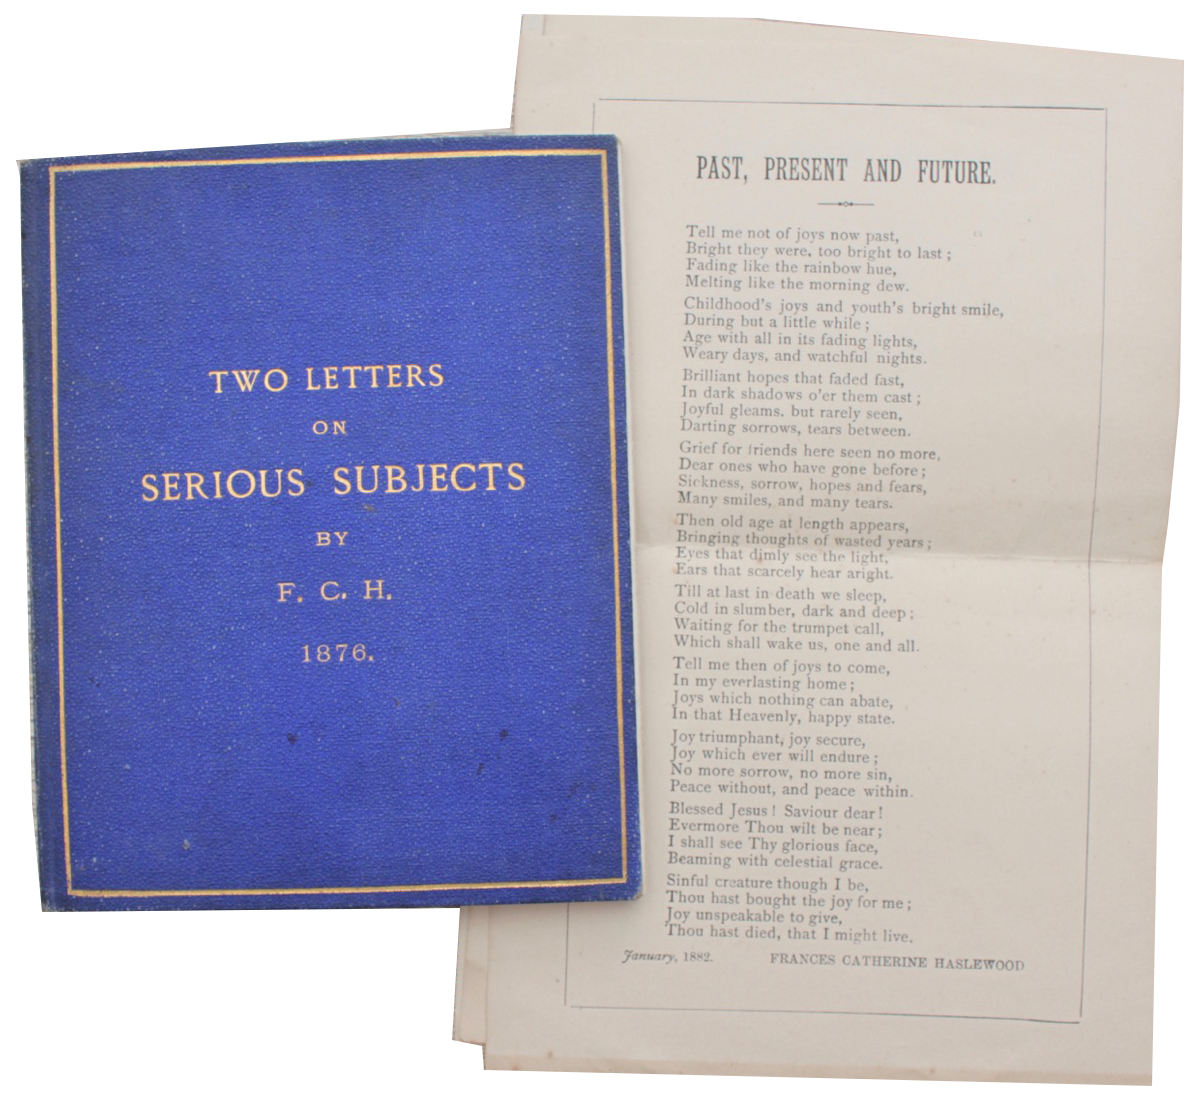 Image for Two Letters on Serious Subjects by F.C.H. [with] Past, Present and Future [a poem].